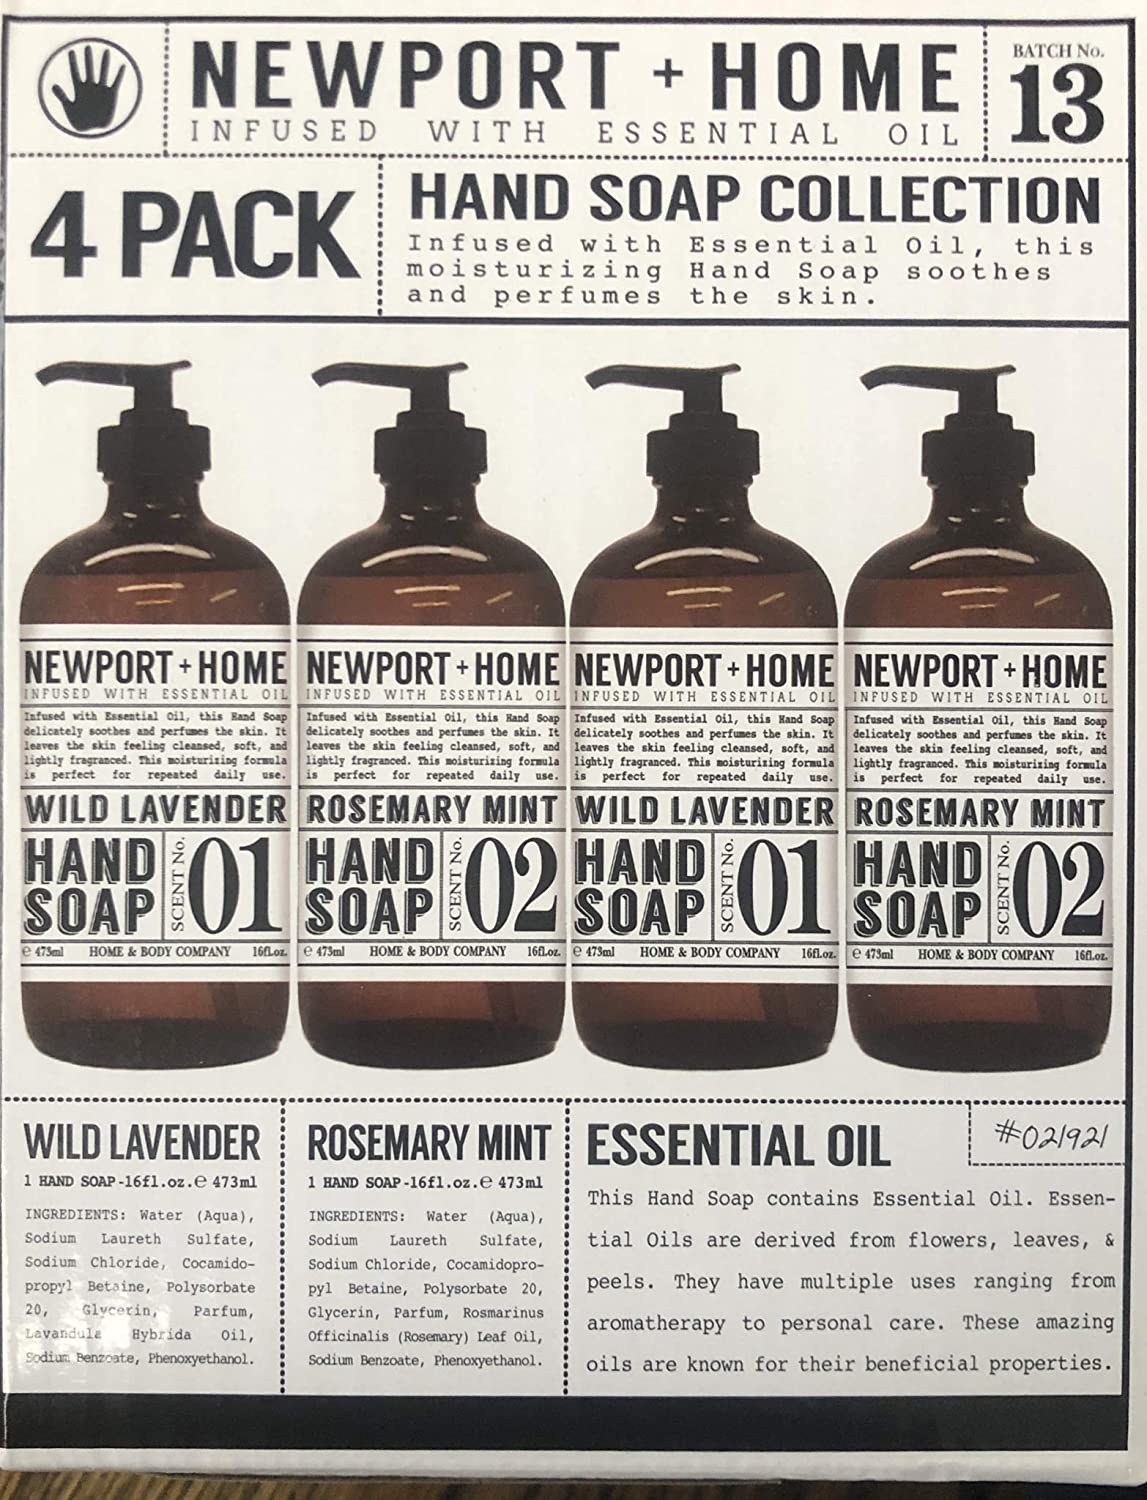 4 Bottles, Newport + Home Hand Soap, 2 Rosemary Mint, 2 Wild Lavender 16oz, Infused with Essential Oil, By Home & Body Co